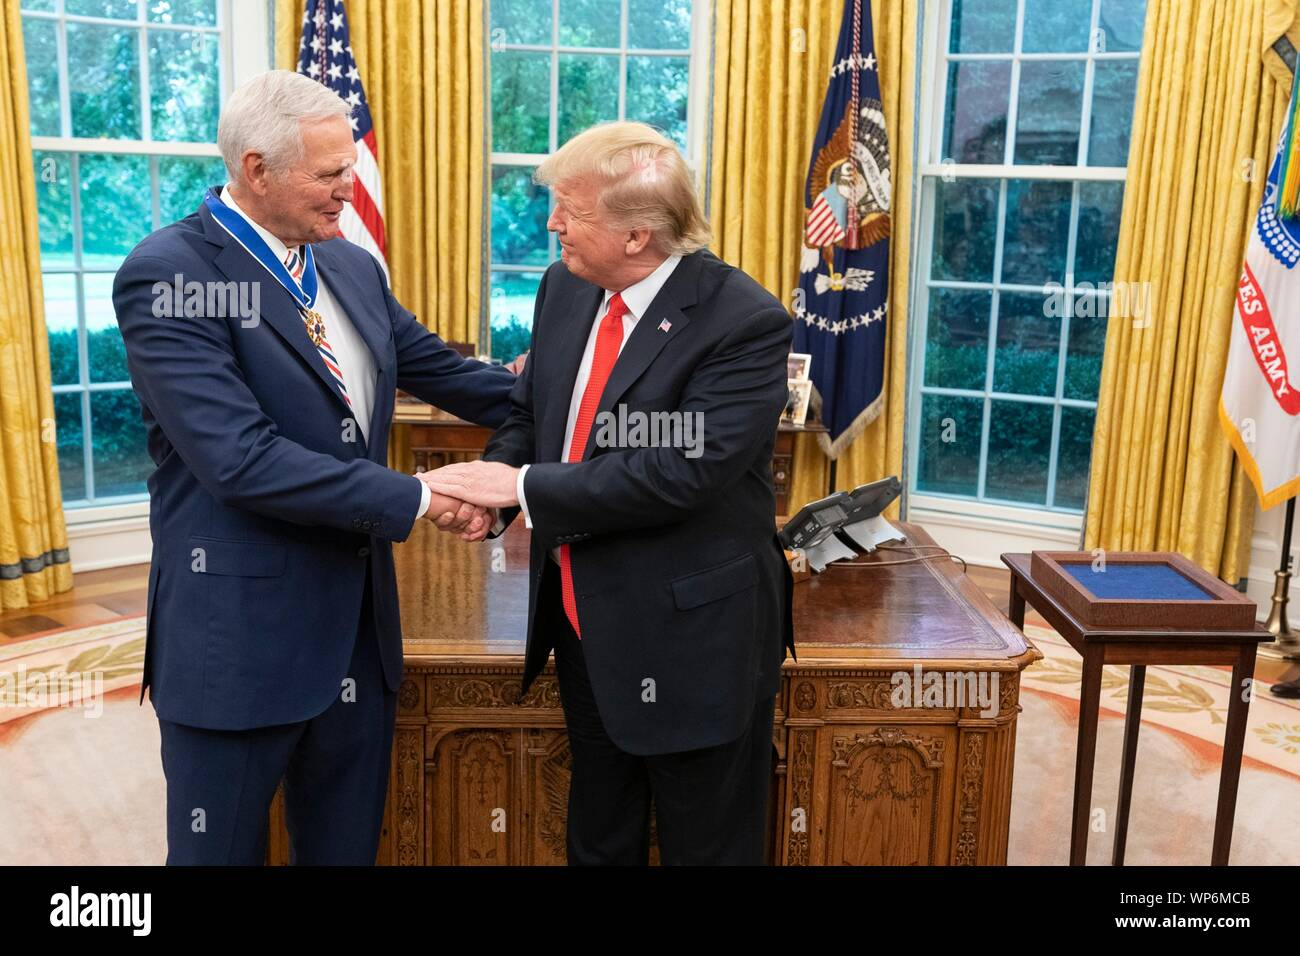 Washington, DC, USA. 05 September, 2019. U.S President Donald Trump congratulates Hall of Fame Los Angeles Lakers basketball star and legendary NBA General Manager Jerry West following the awarding of the Presidential Medal of Freedom, during a ceremony in the Oval Office of the White House September 5, 2019 in Washington, DC. Stock Photo